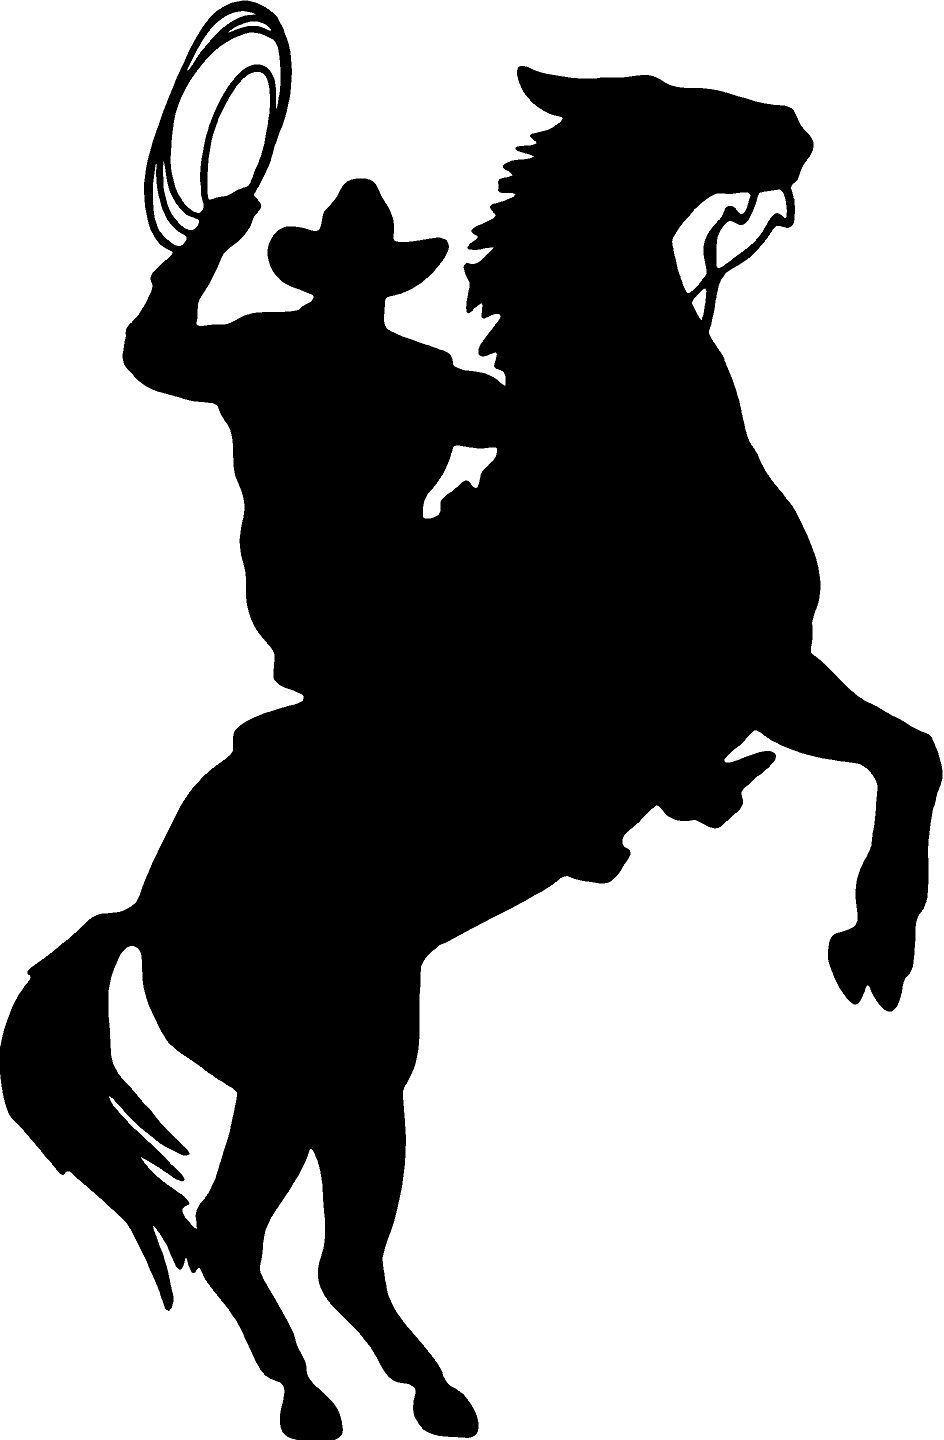 Western Horse Silhouette at GetDrawings | Free download |Western Silhouette Art